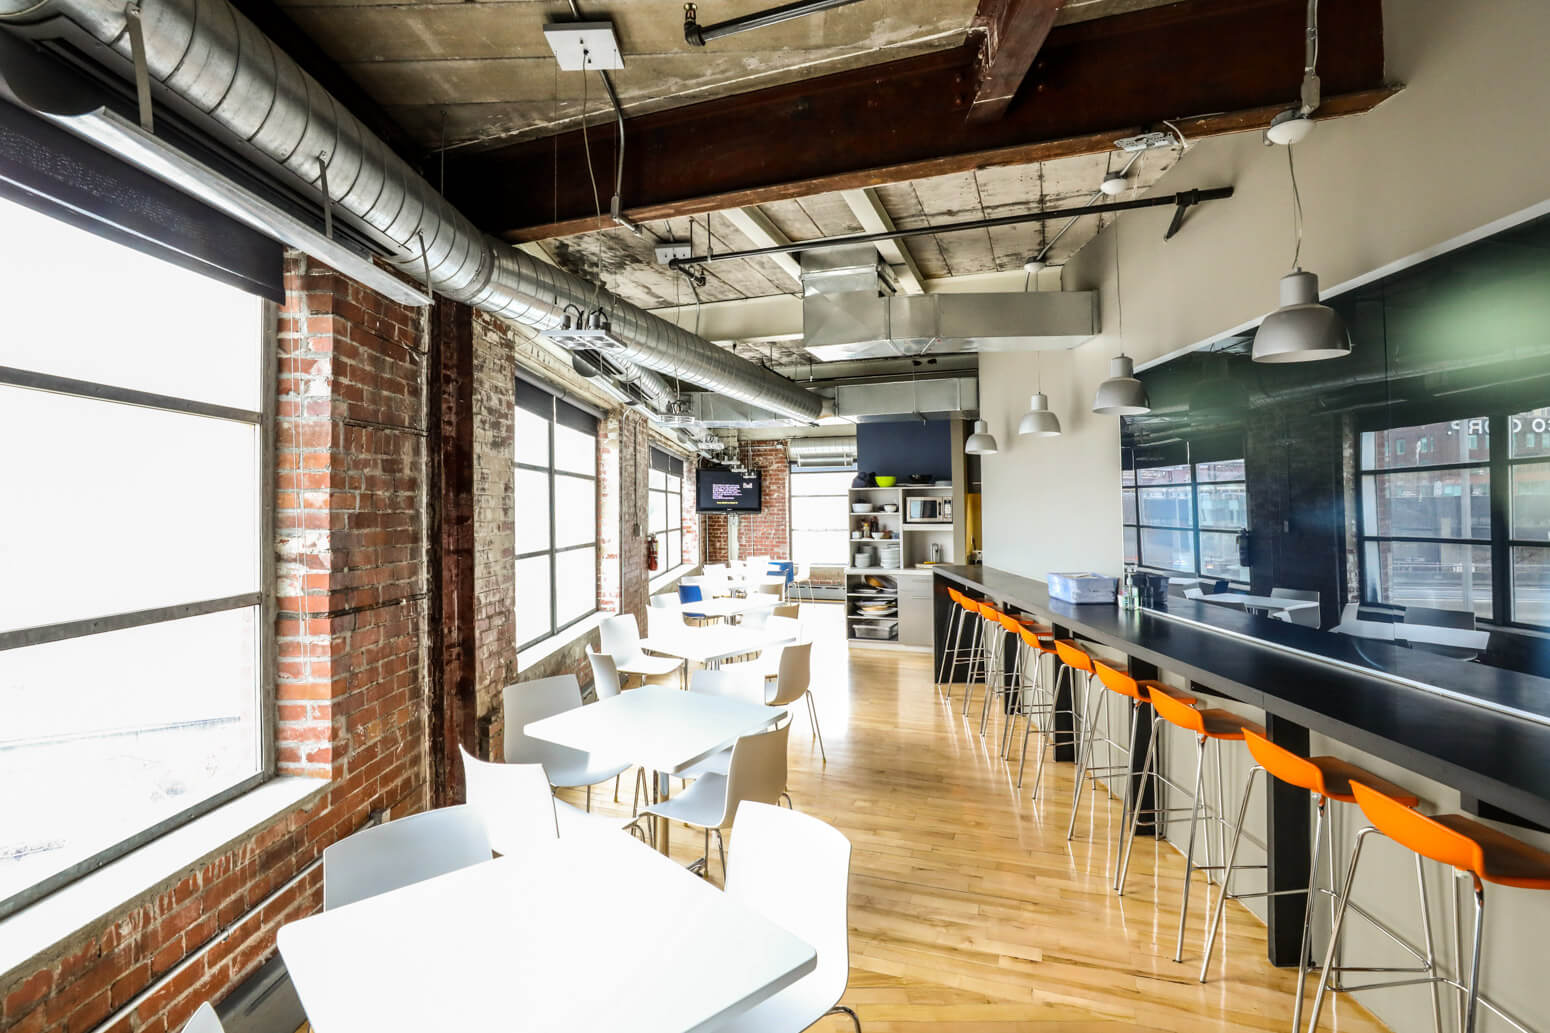 Autodesk Montreal Office Killer Spaces-3